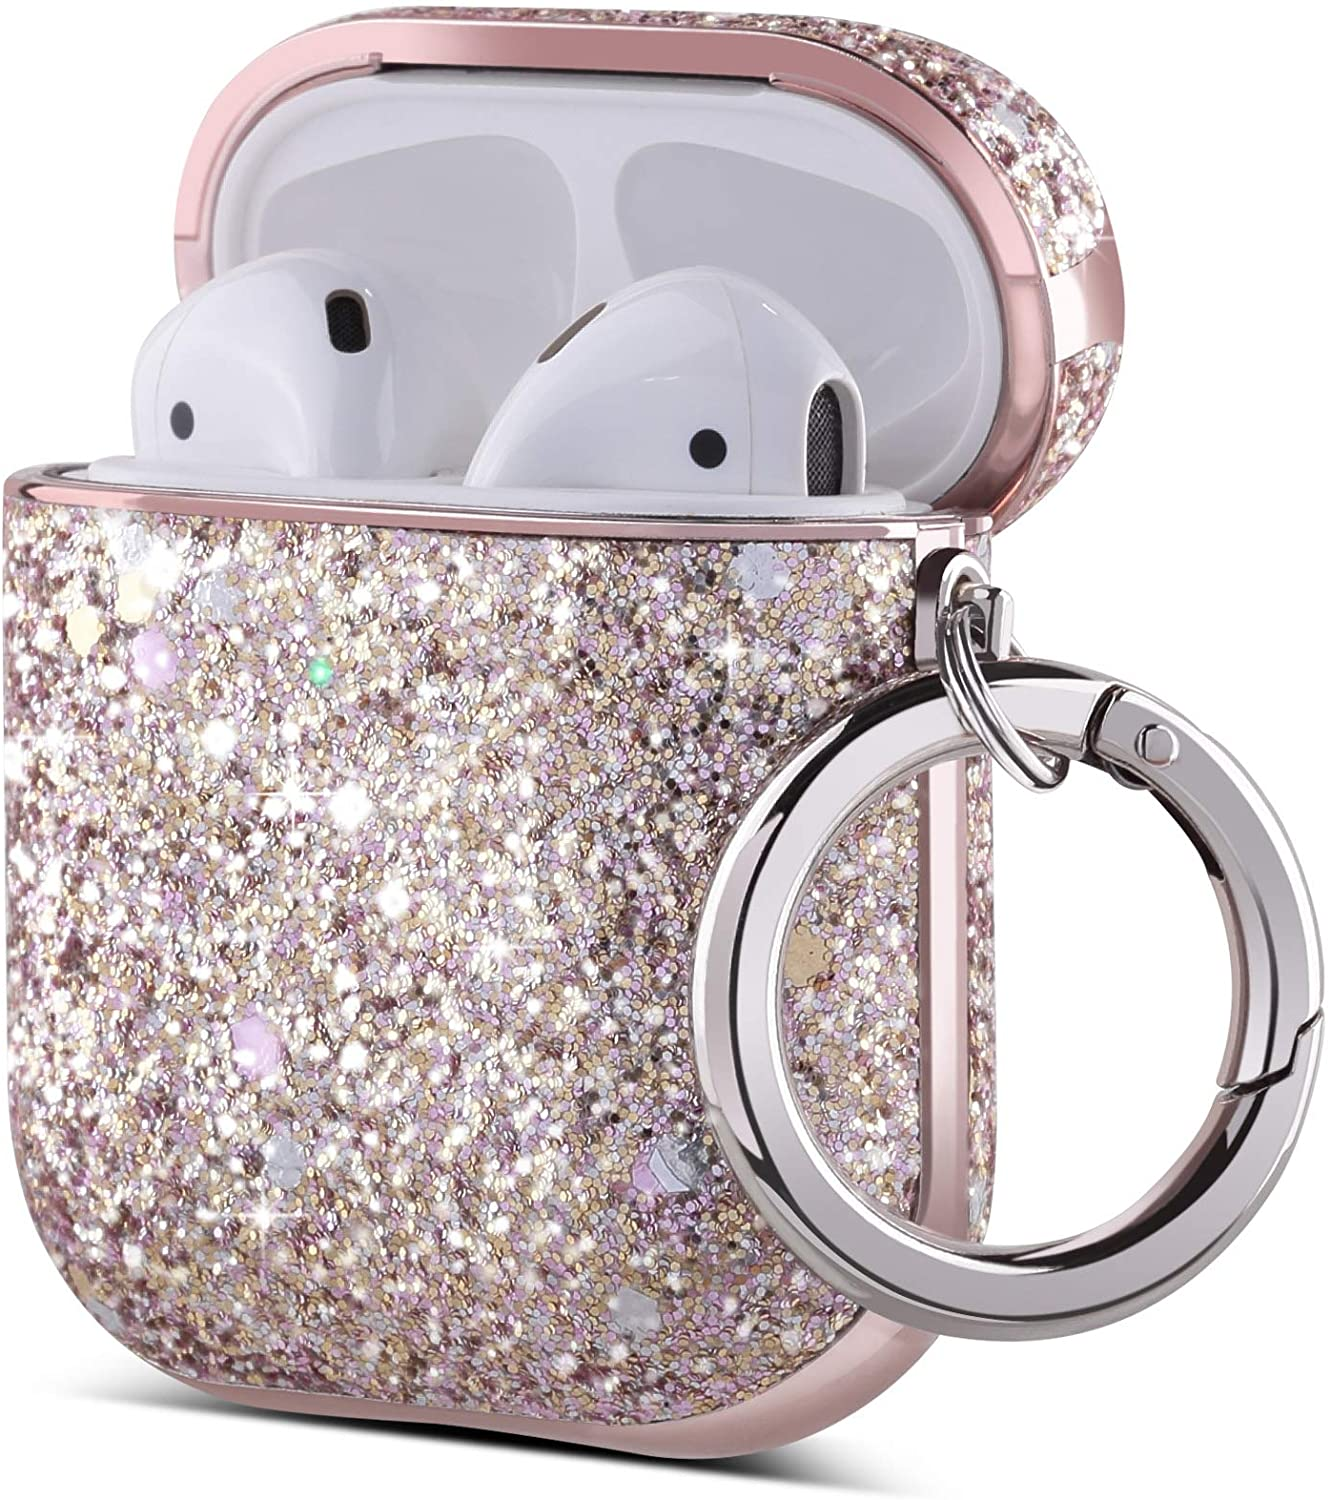 rose-gold-gifts-airpod-case